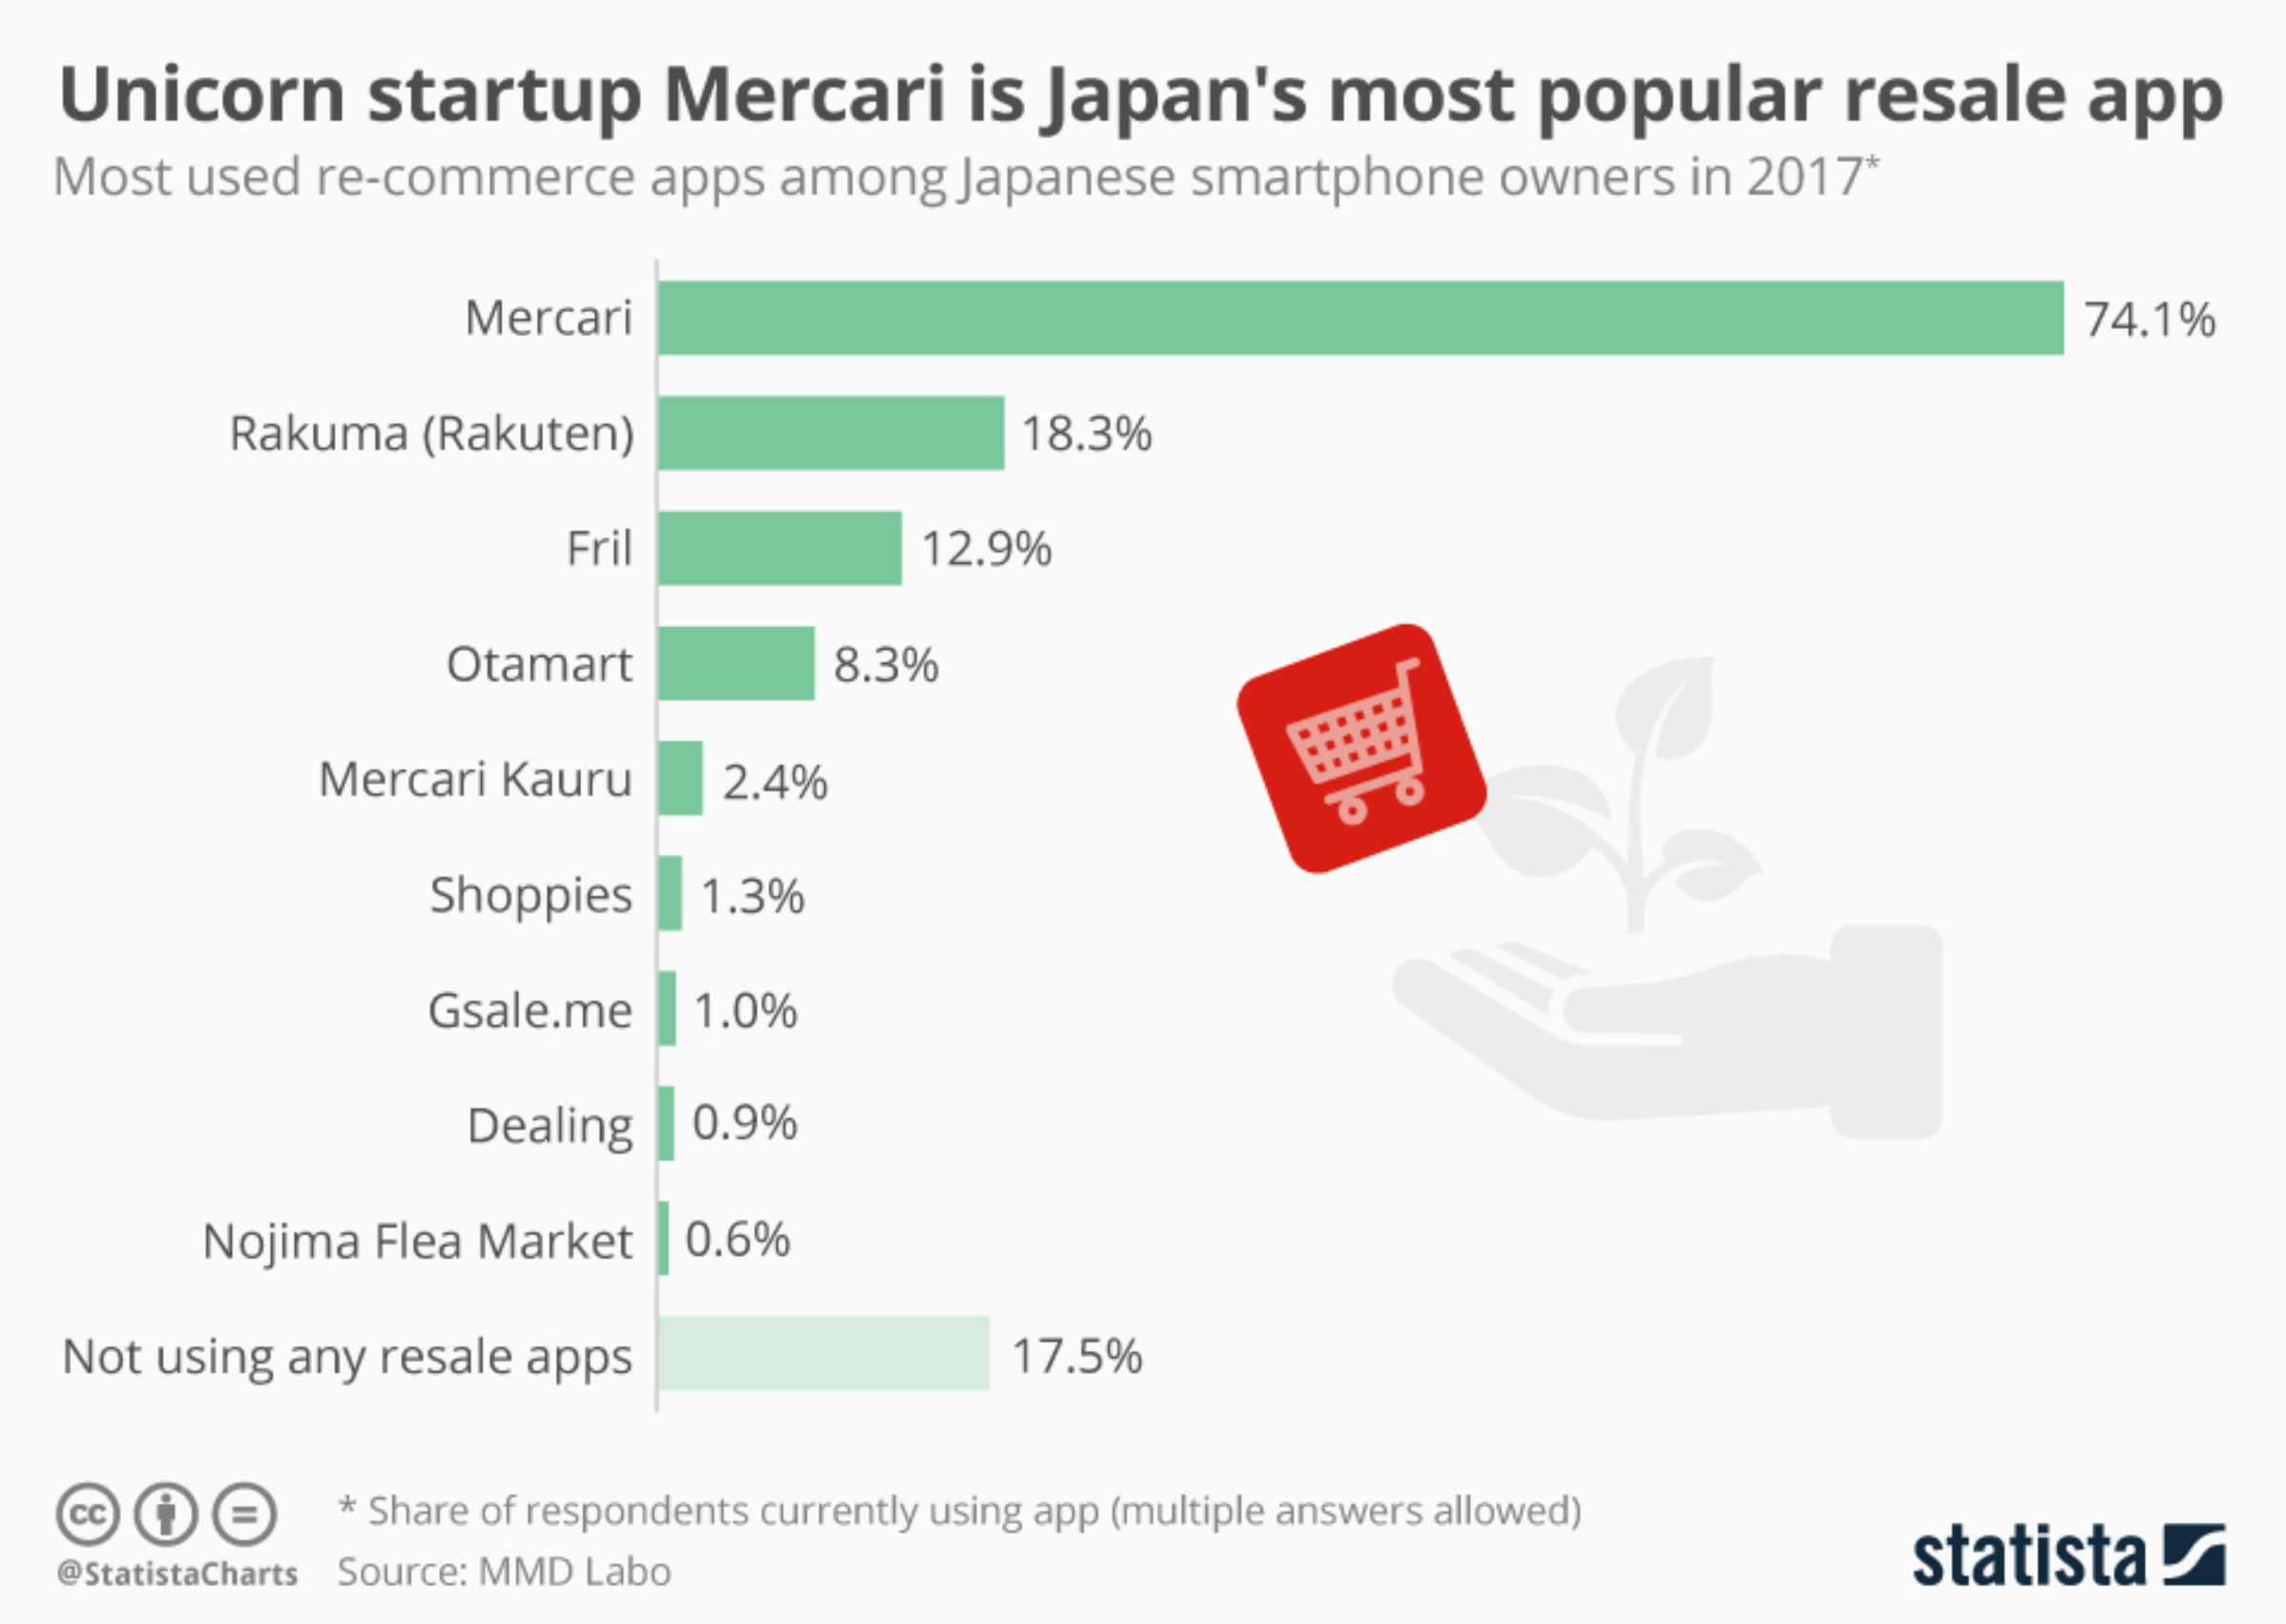 Most used re-ecommerce apps among smartphone users in Japan 2017